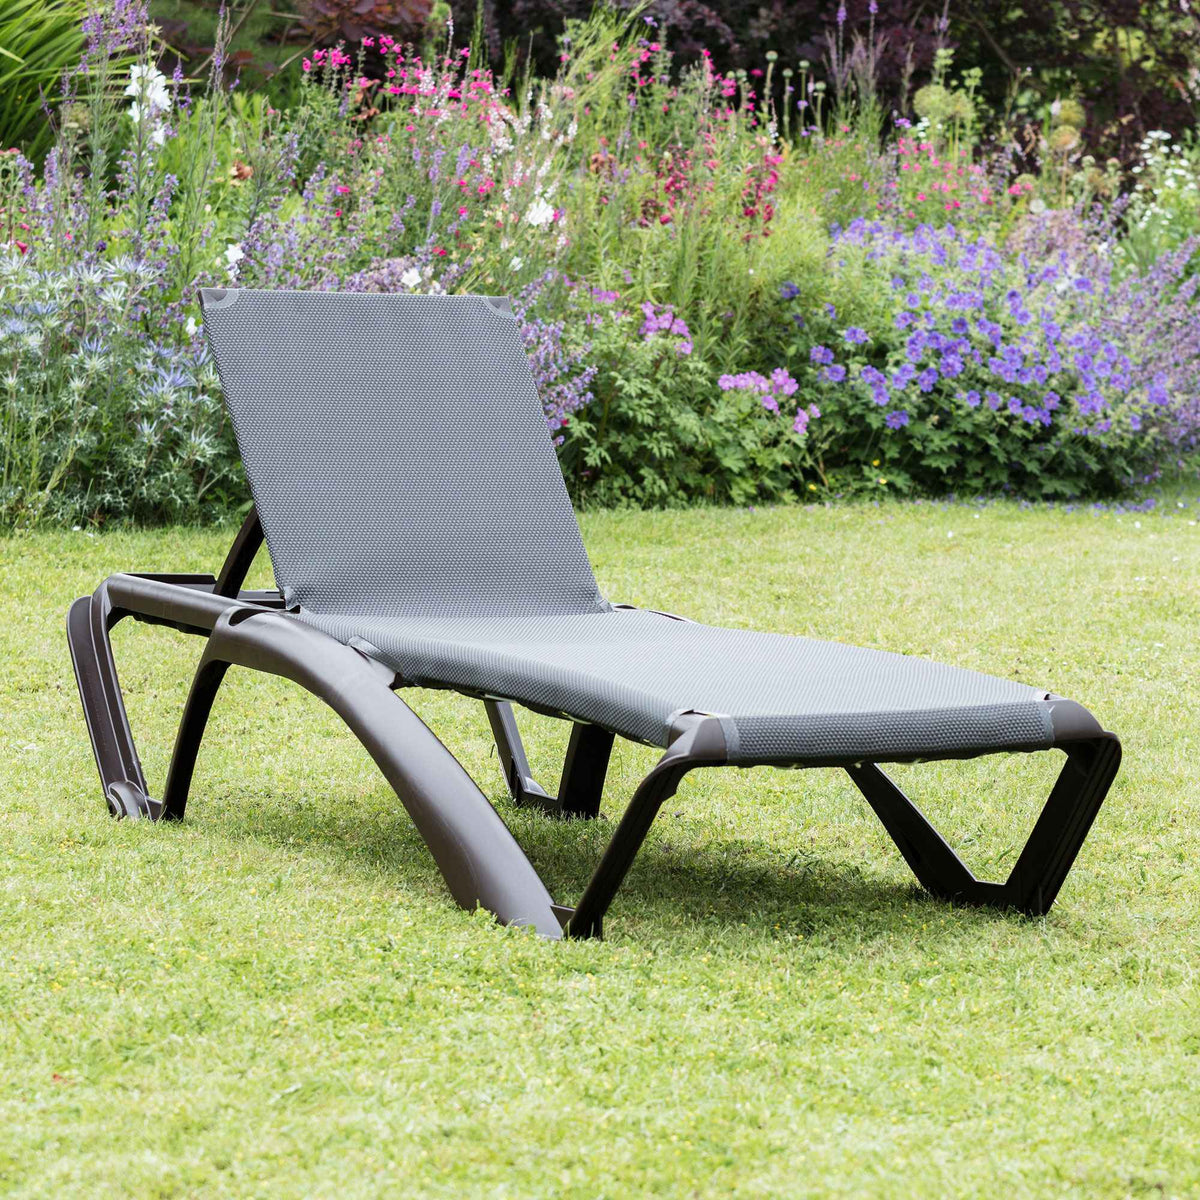 Resol Marina Sun Lounger - Chocolate Brown Frame with Brown Canvas Material